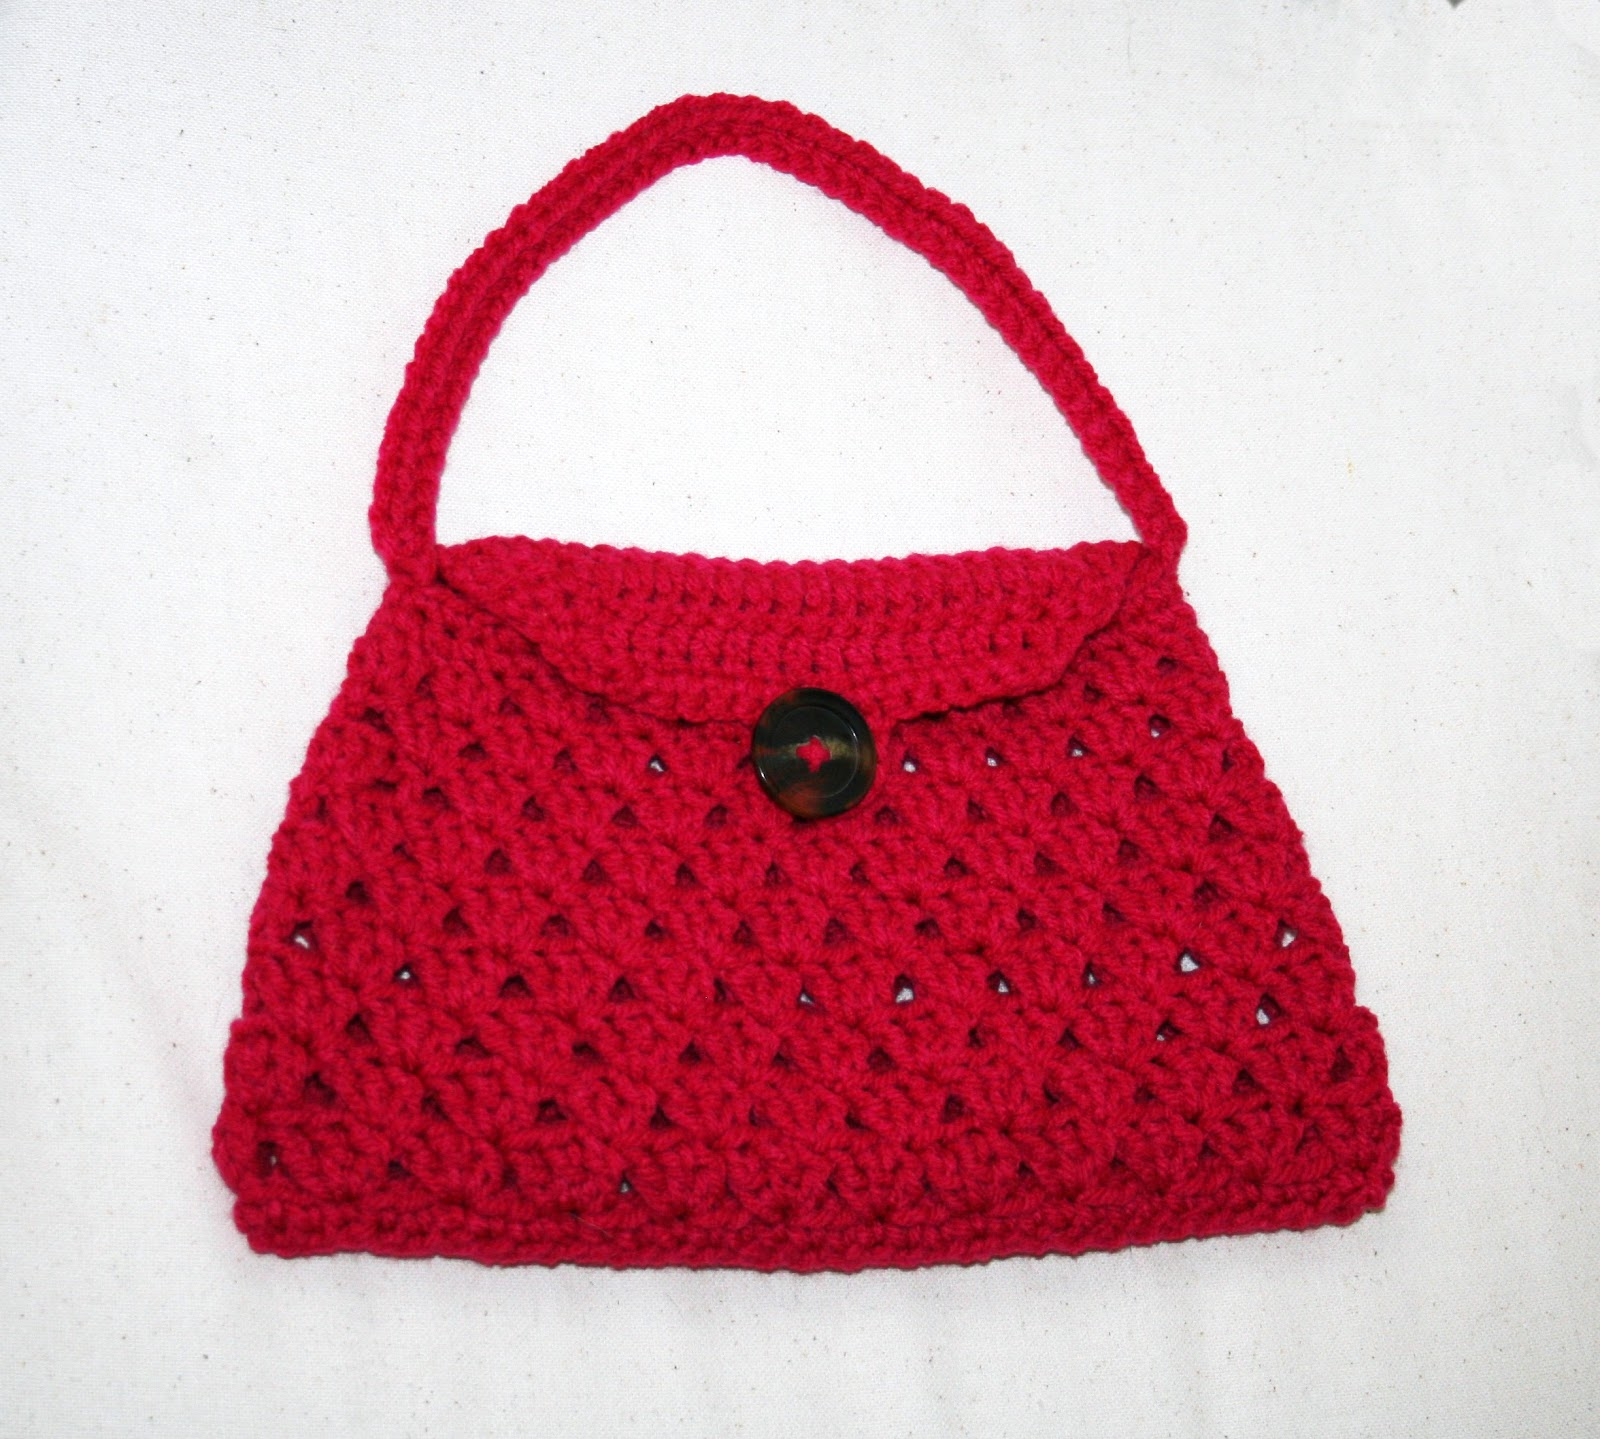 Tampa Bay Crochet: Free Crochet Pattern: Stylish Crochet ...